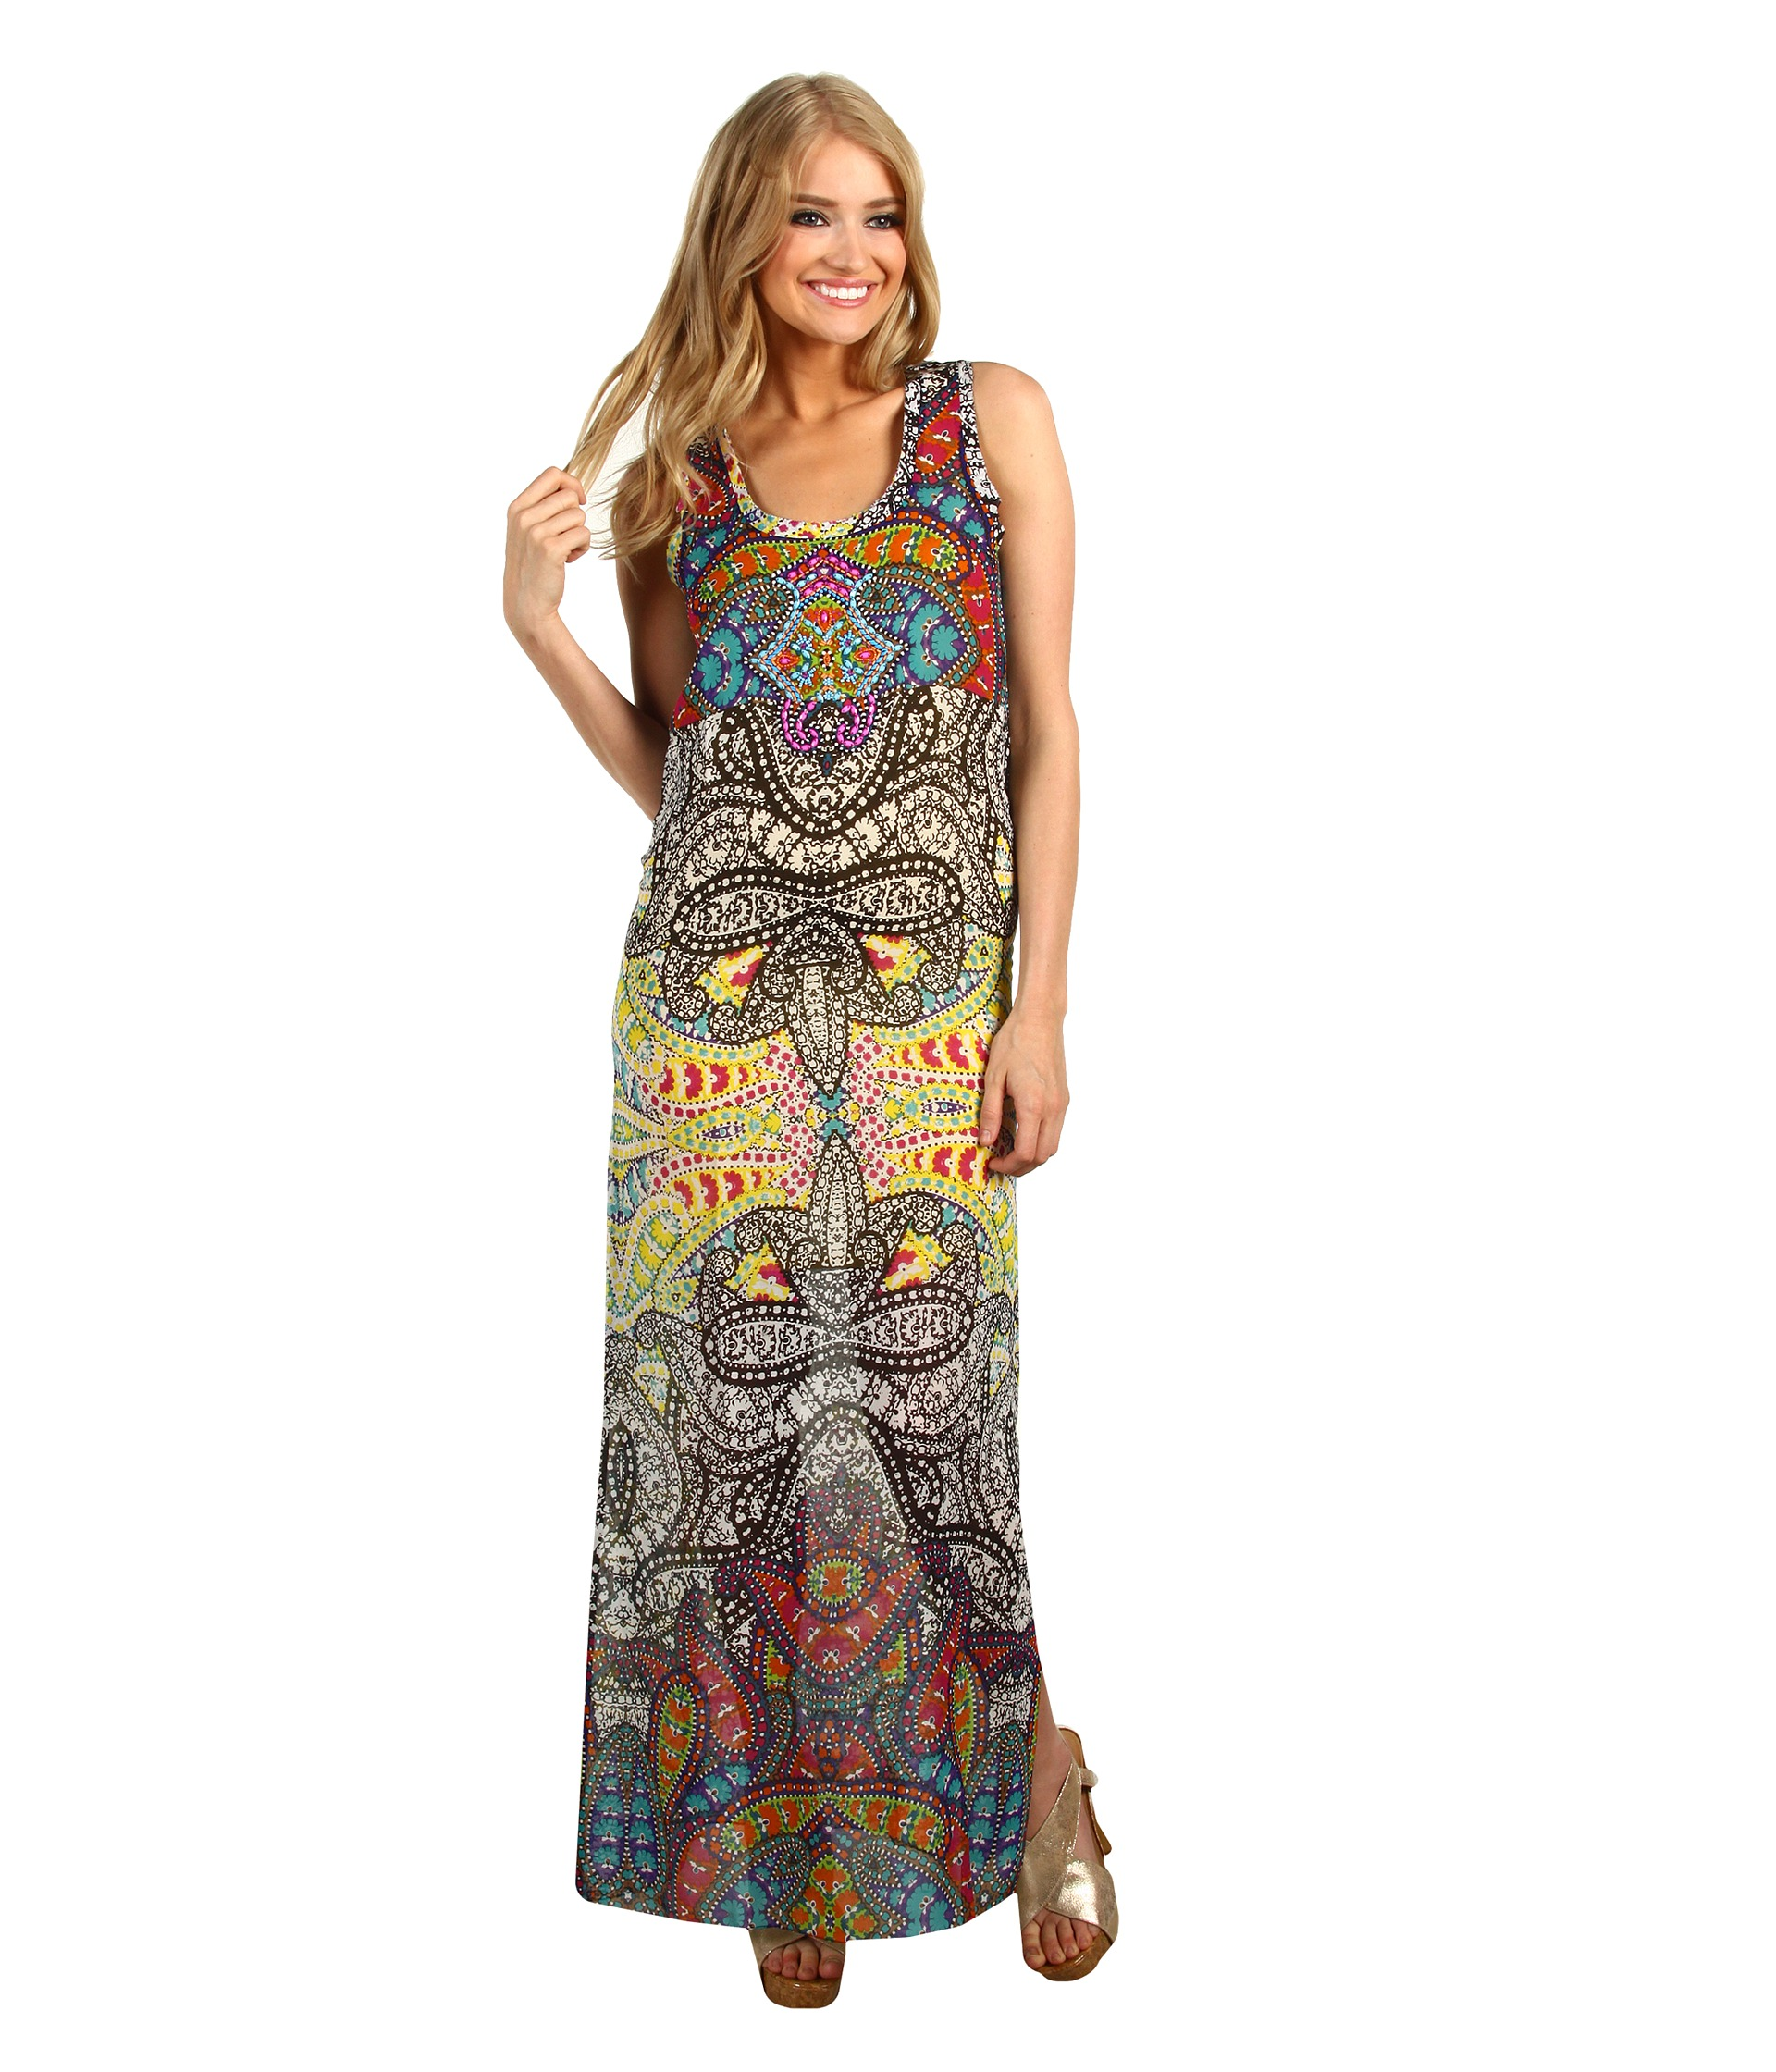 Nicole Miller Fruition Maxi Dress $131.99 (  MSRP $440.00)